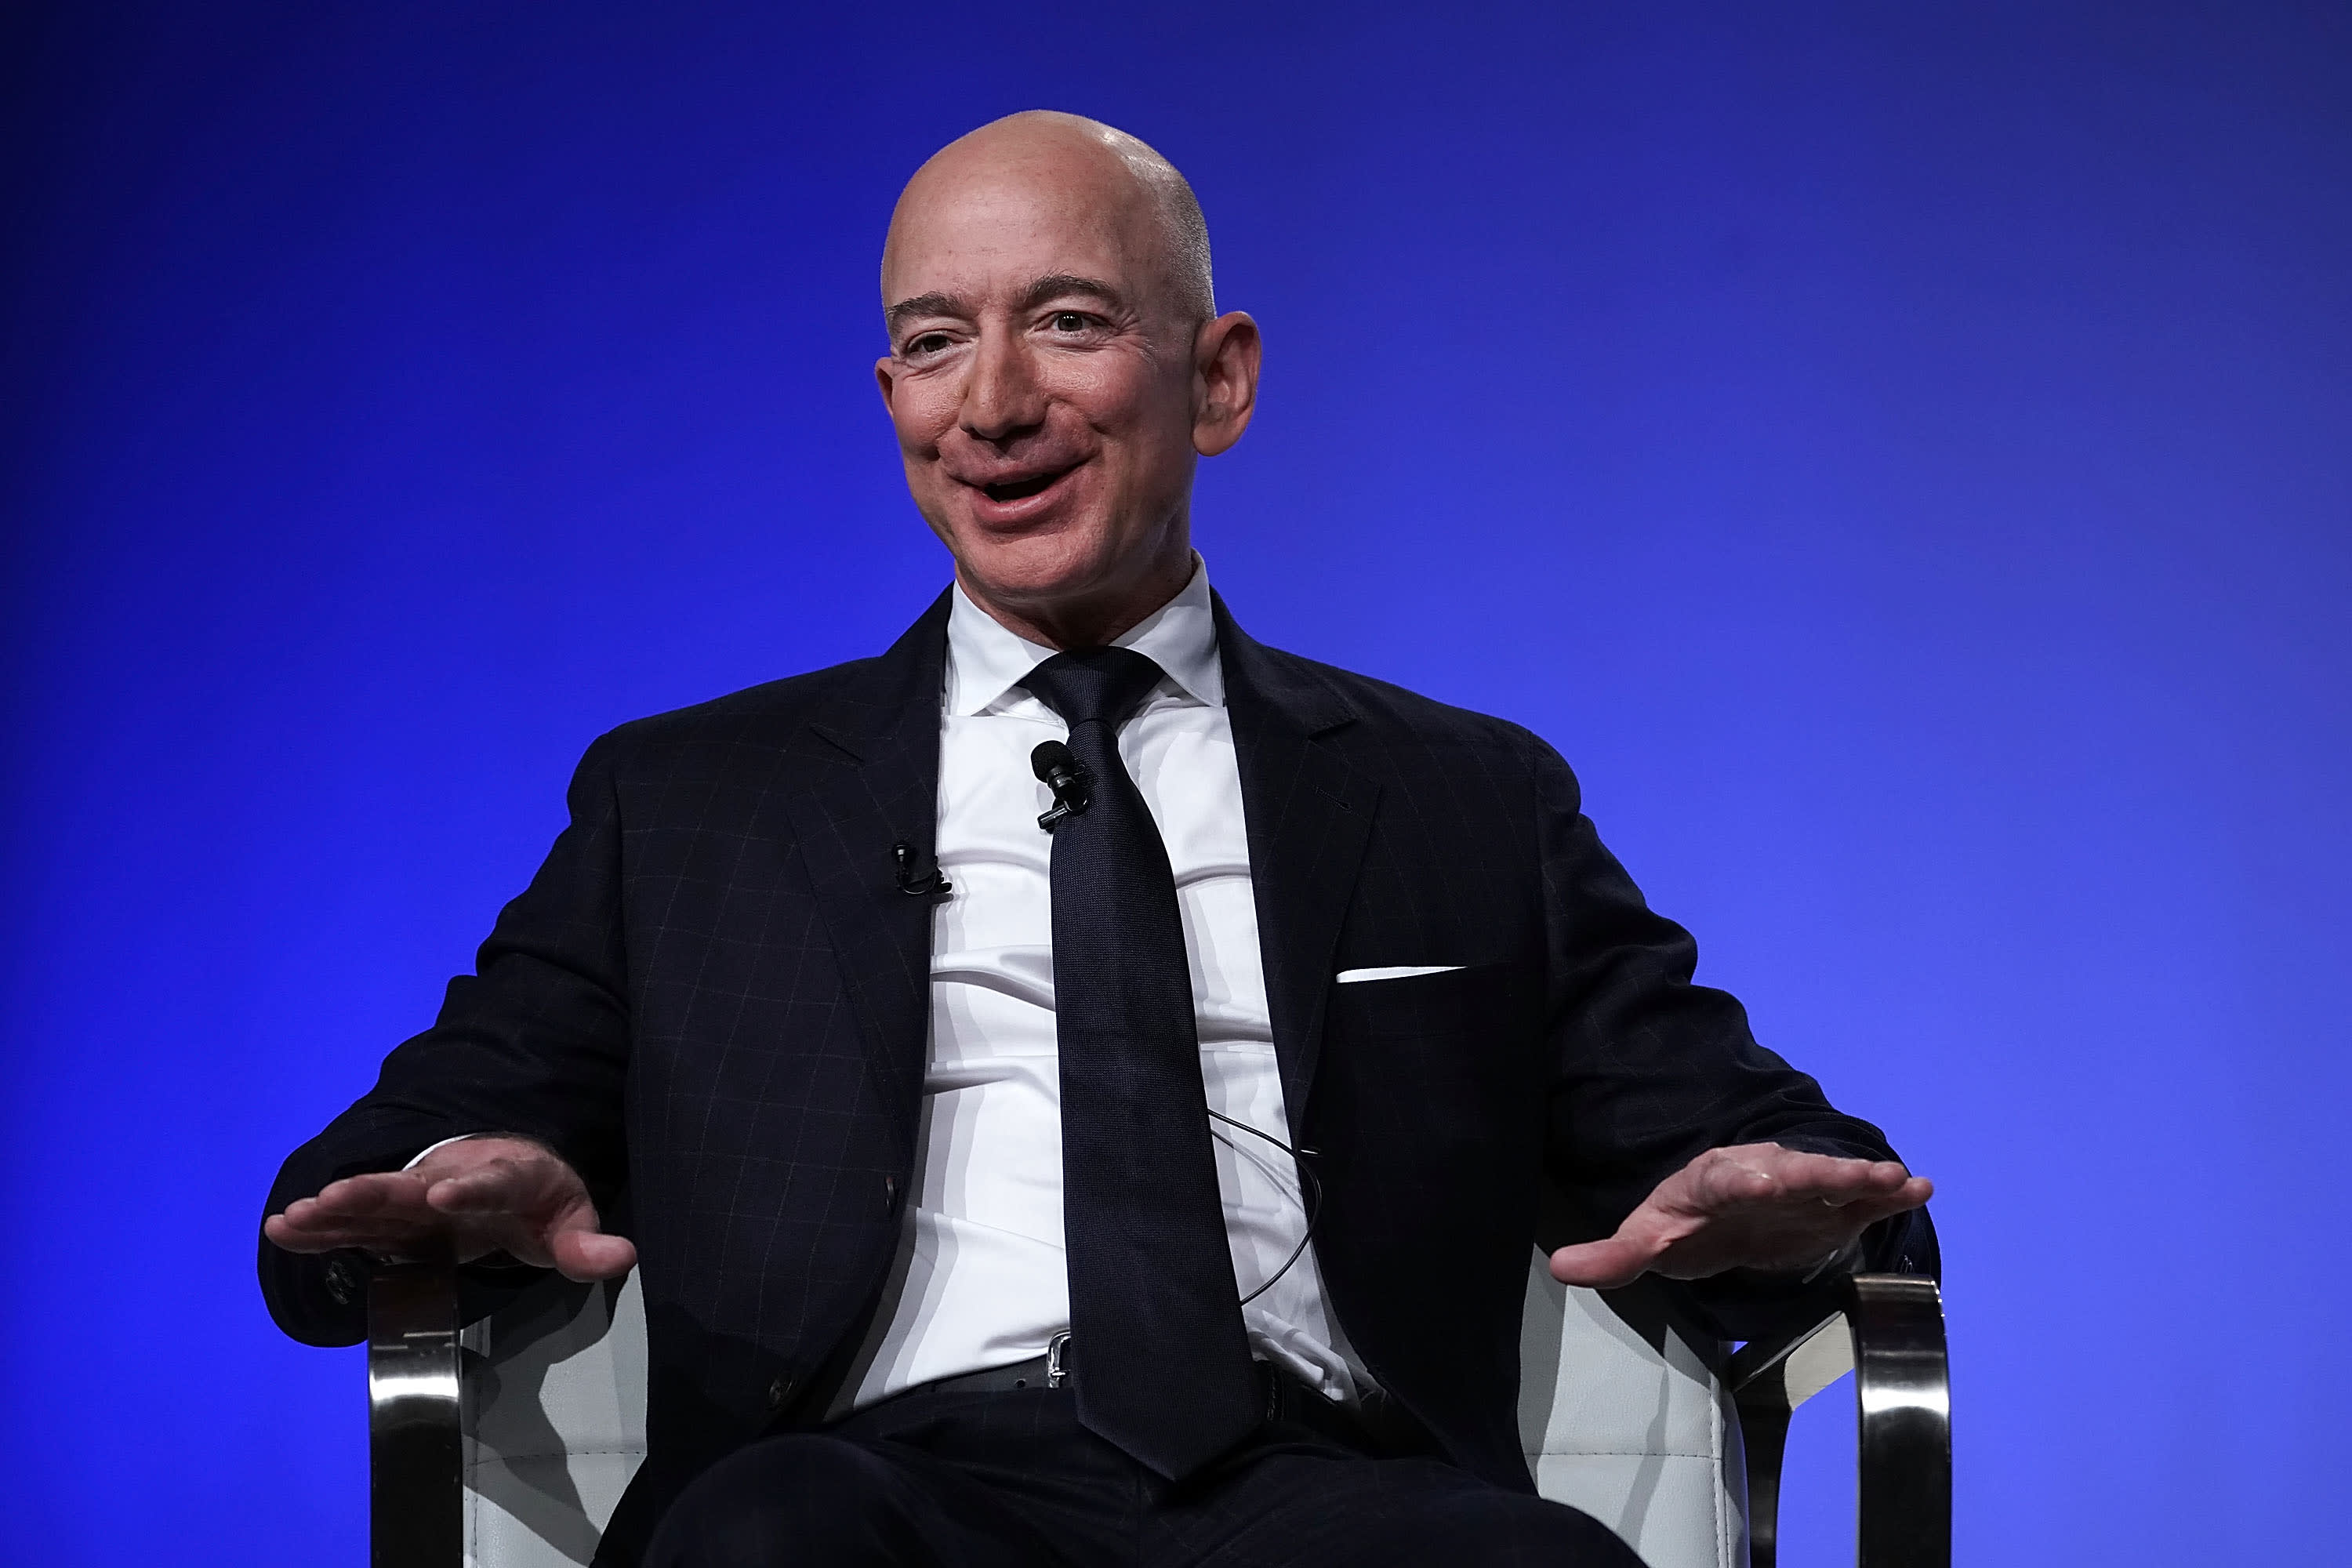 Jeff Bezos: This is the one Amazon leadership principle that 'surprises people' the most